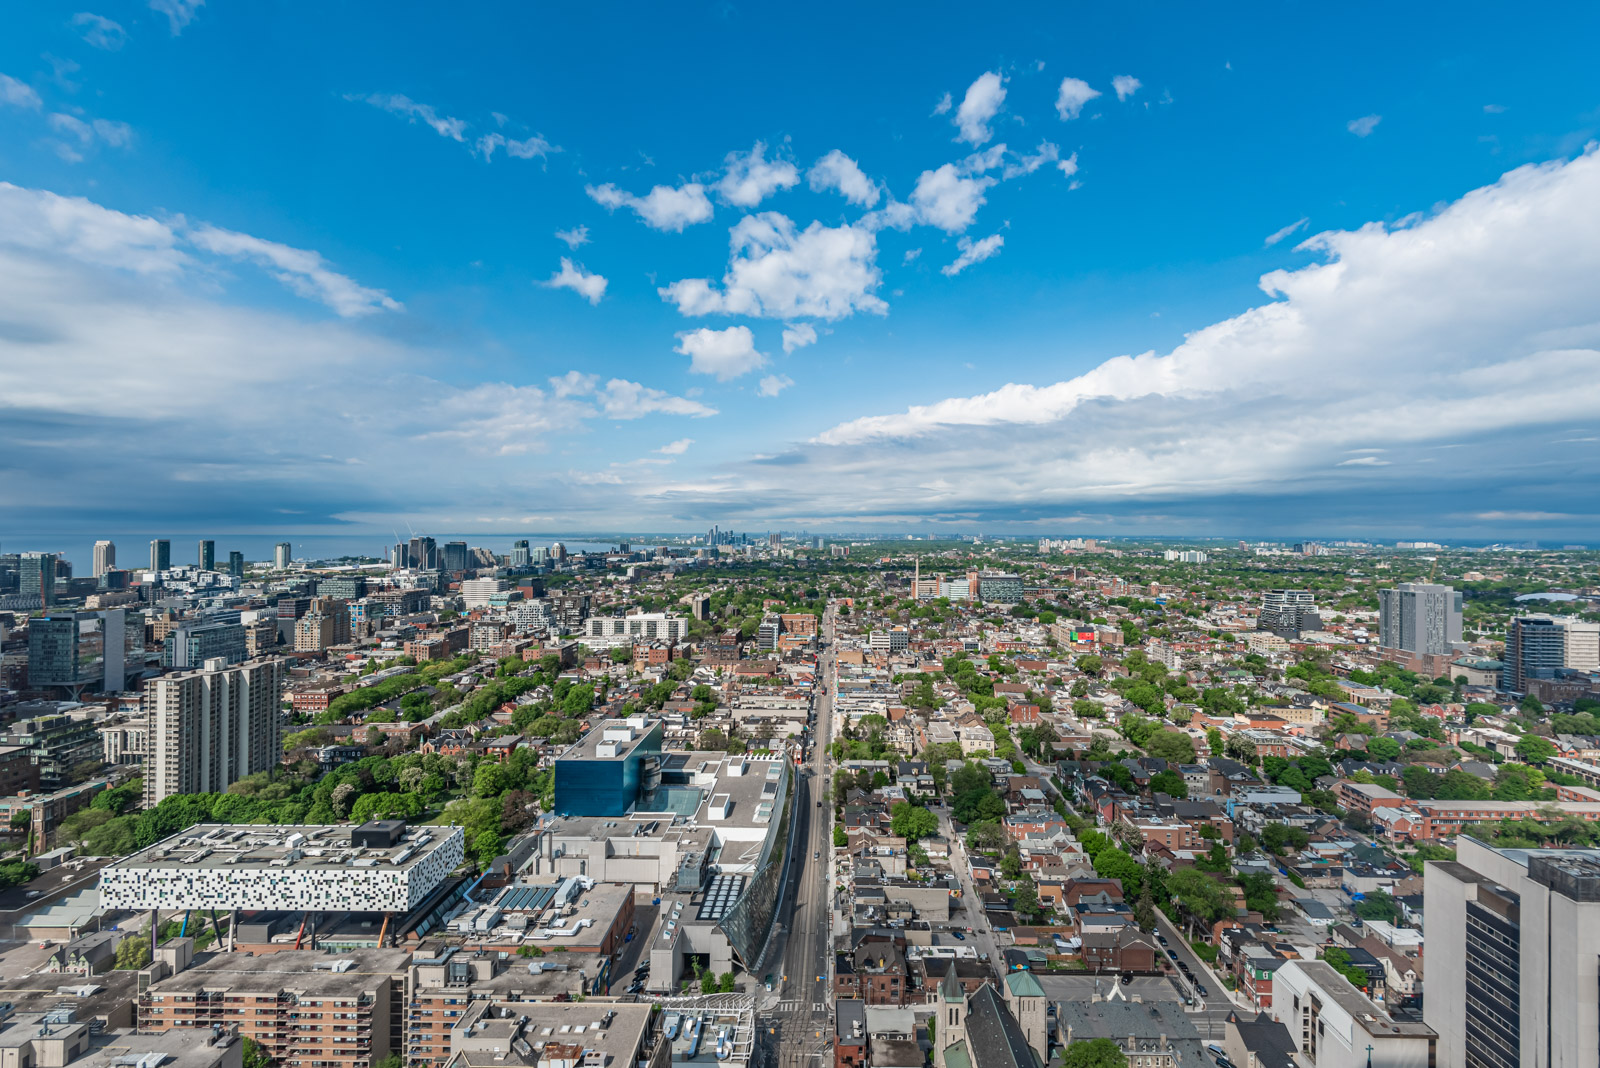 Aerial view of downtown Toronto from balcony of 488 University Ave Unit 3410.